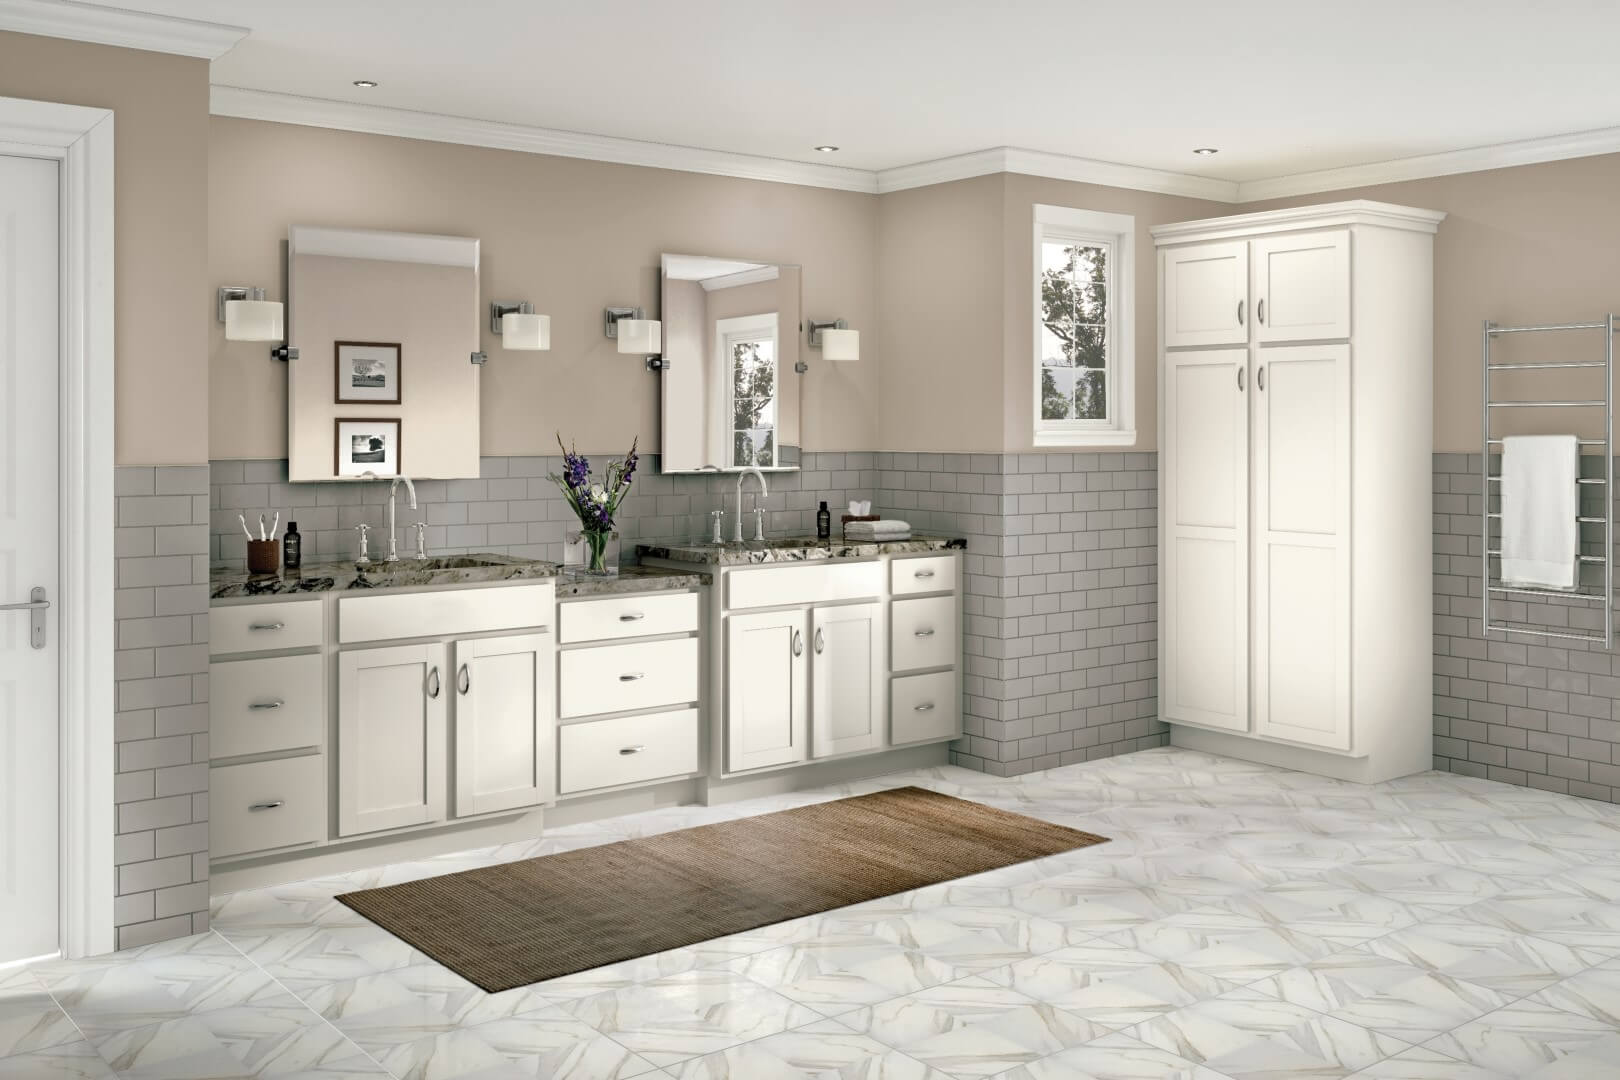 Your Dream Bathroom Starts Here Every Great Space In A Home Starts With Great Vision Design And Direction We Can Help You Make The Most Of Any Space